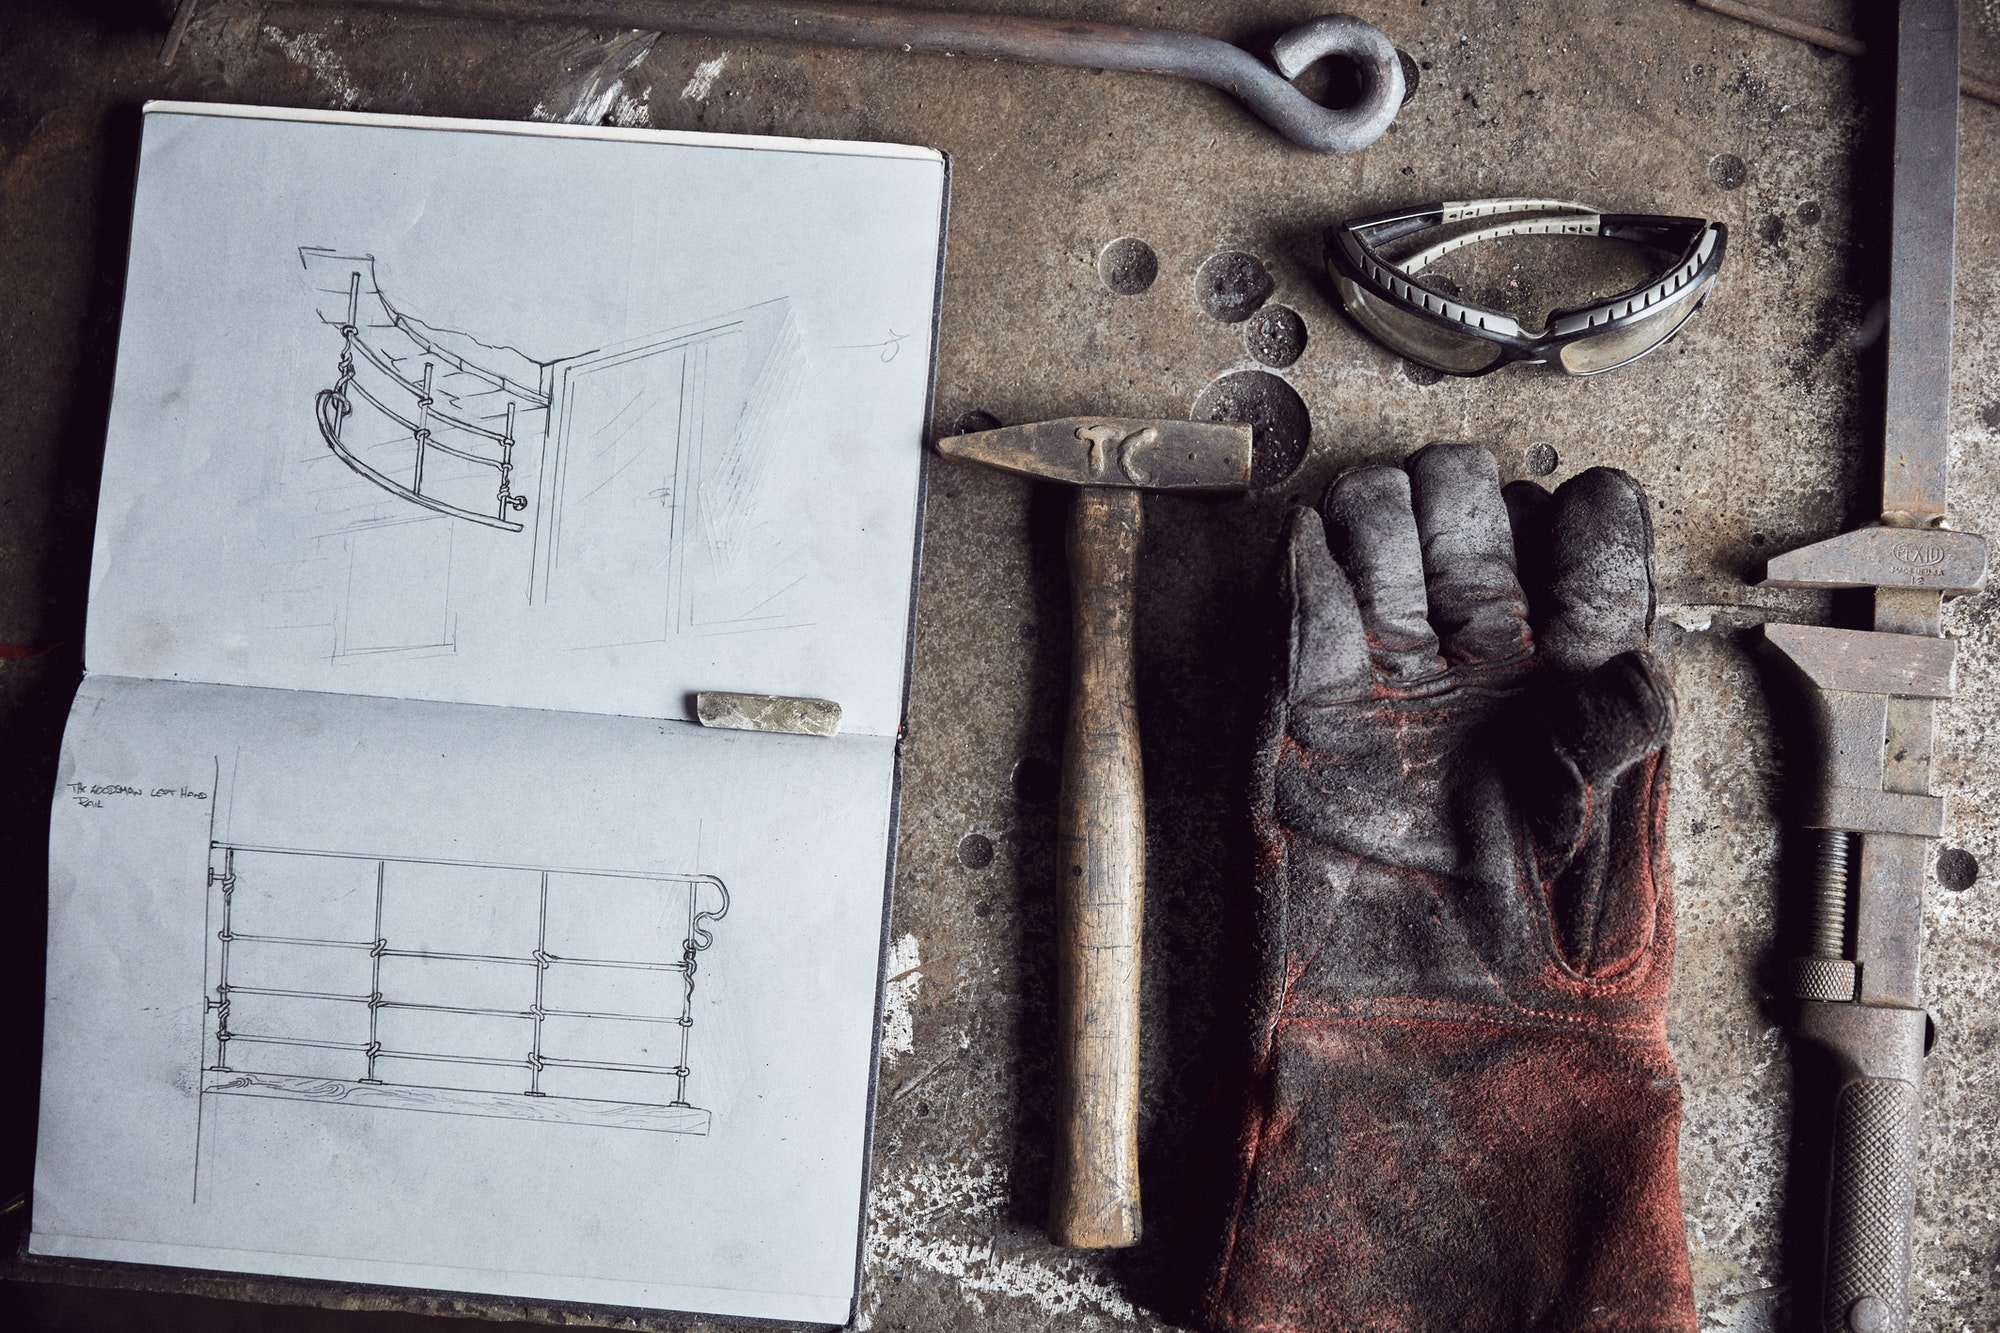 Artisan metalworker's tools, sketches in a notebook and a glove